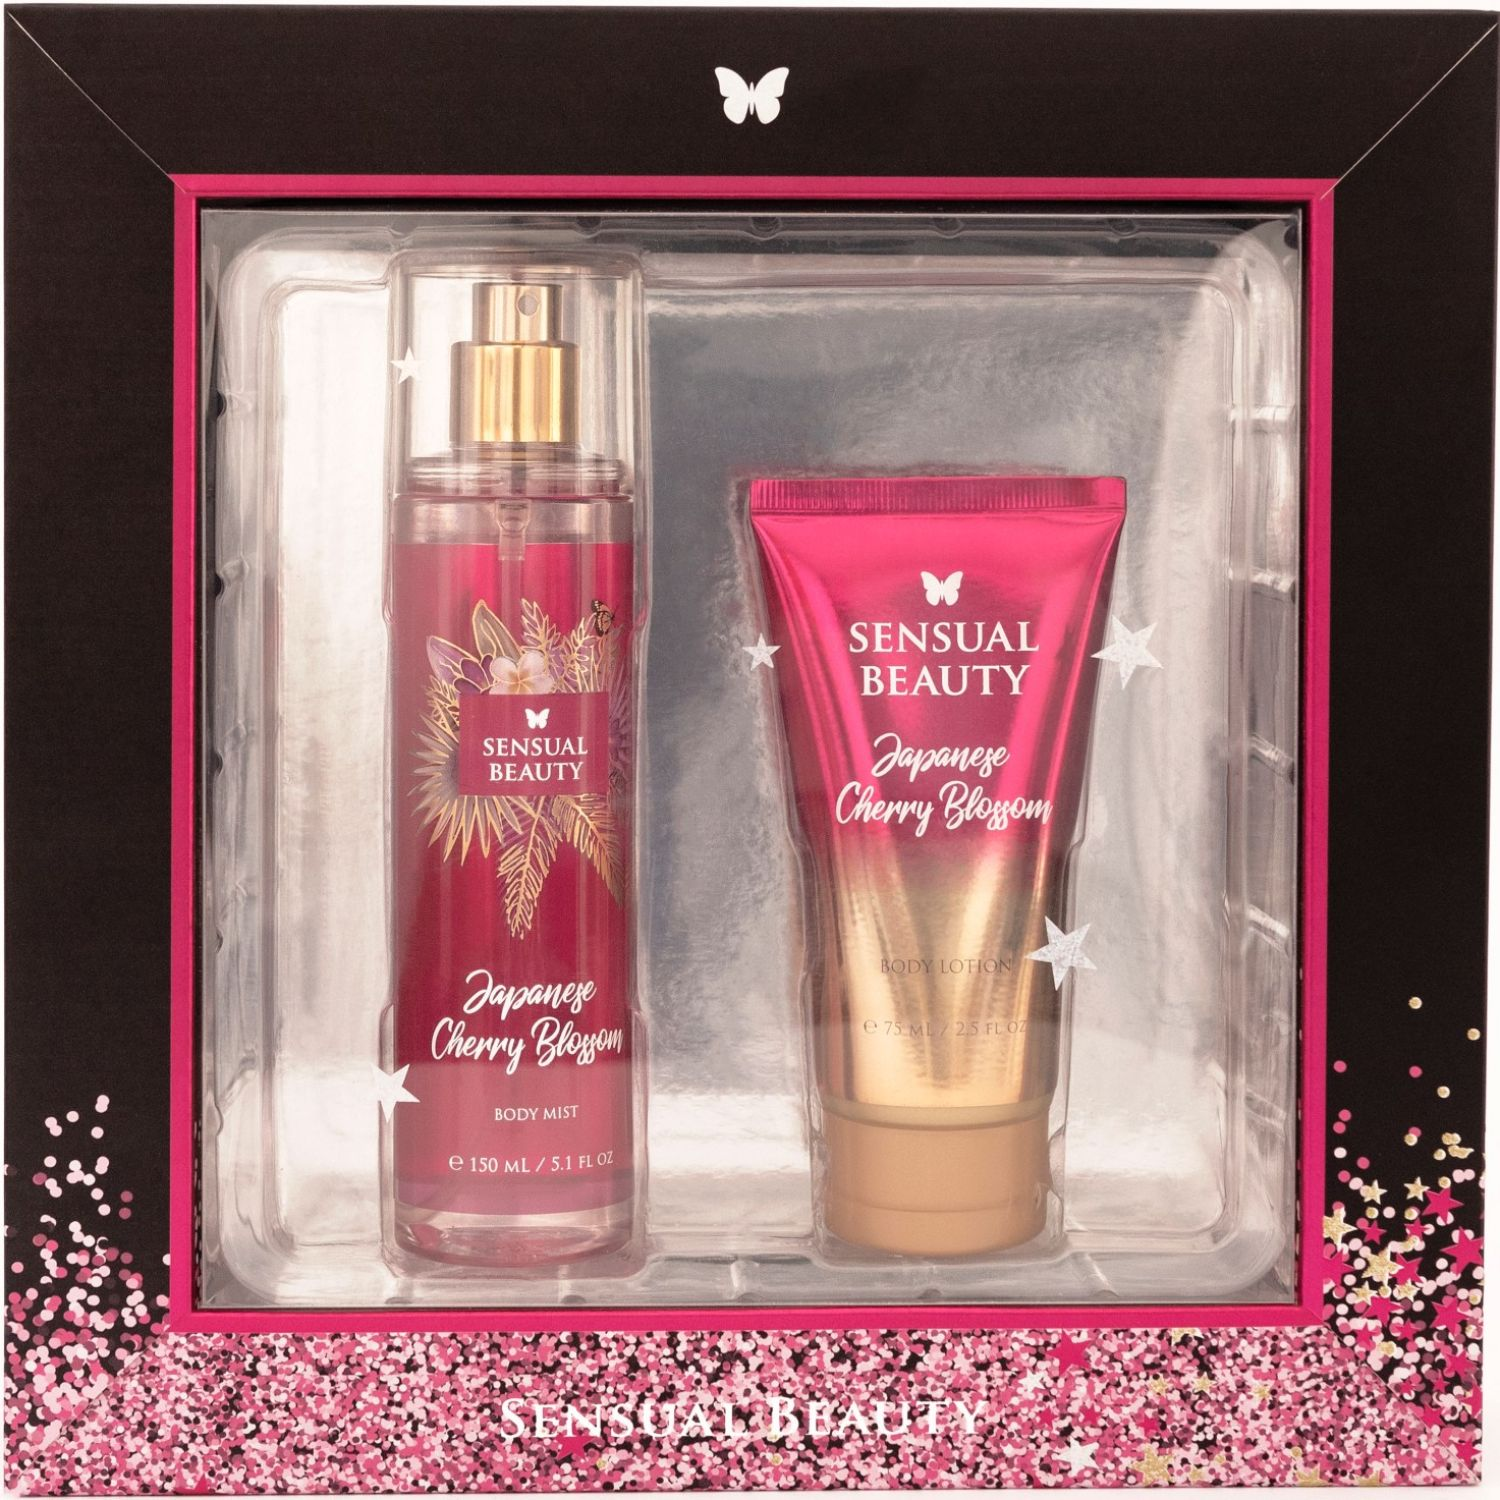 SENSUAL BEAUTY Set Bm150ml+bl75ml Japanese Ch.B. Fucsia Mujeres